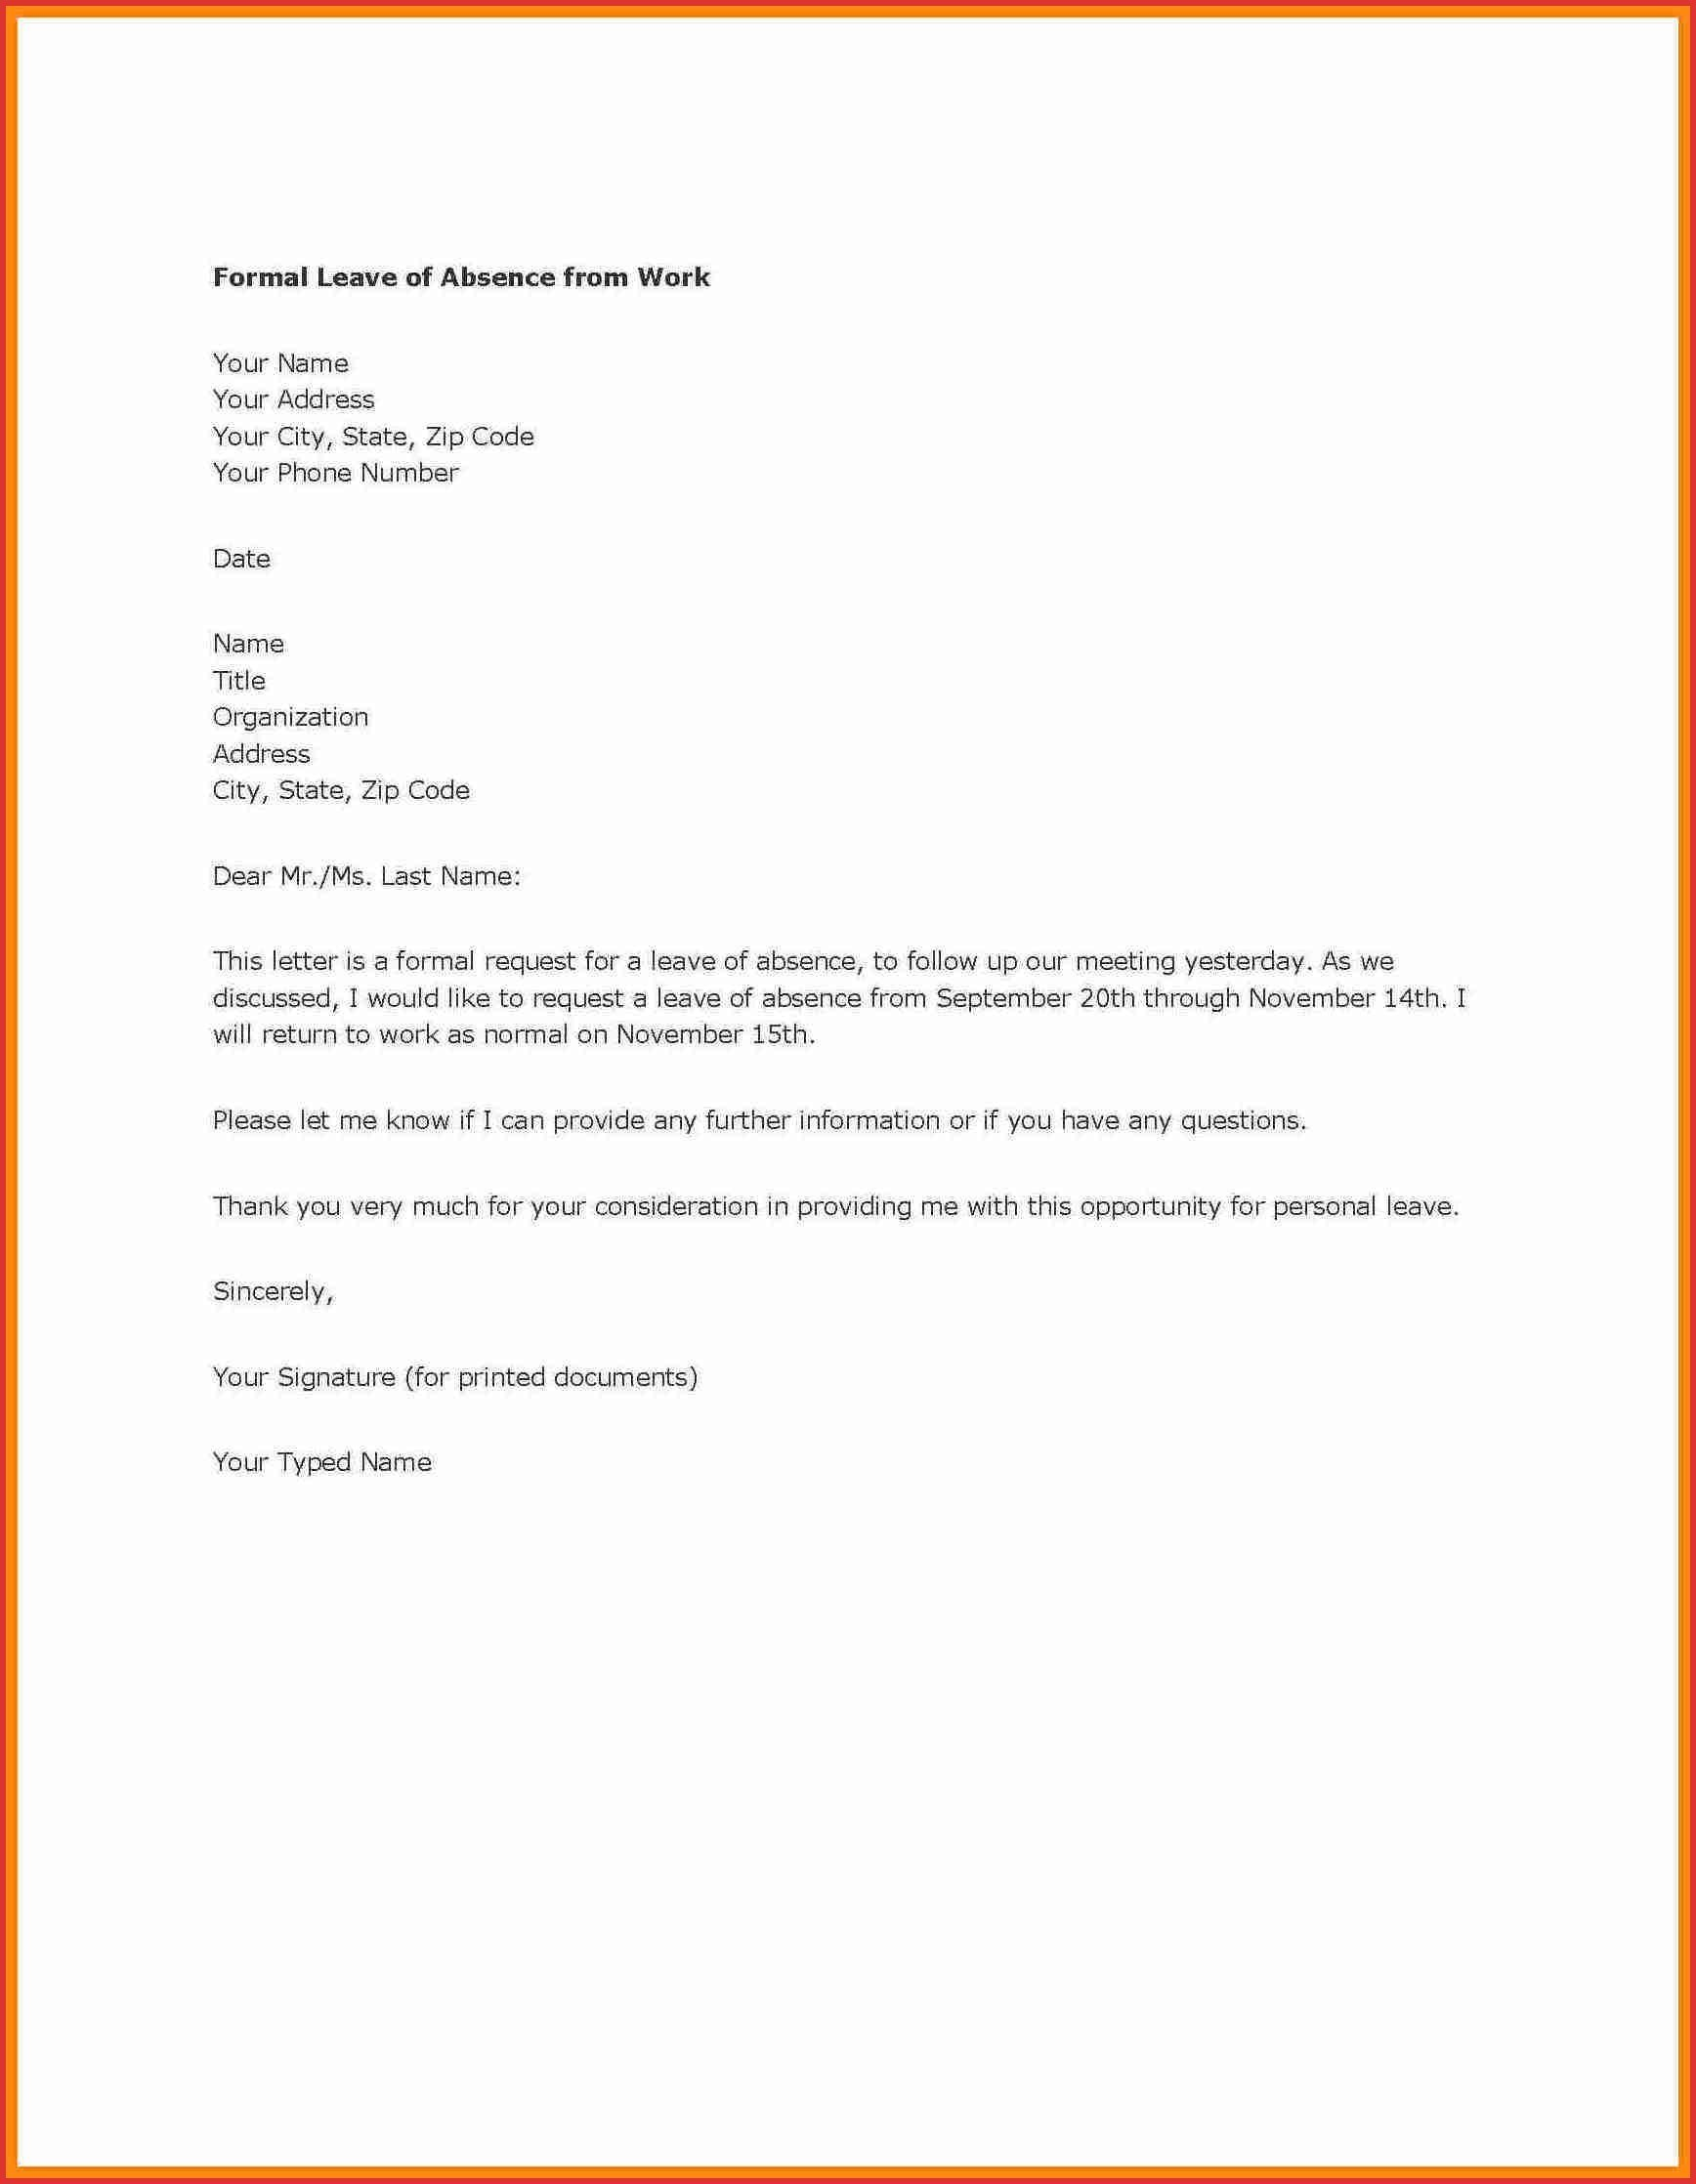 application to principal for leave of absence